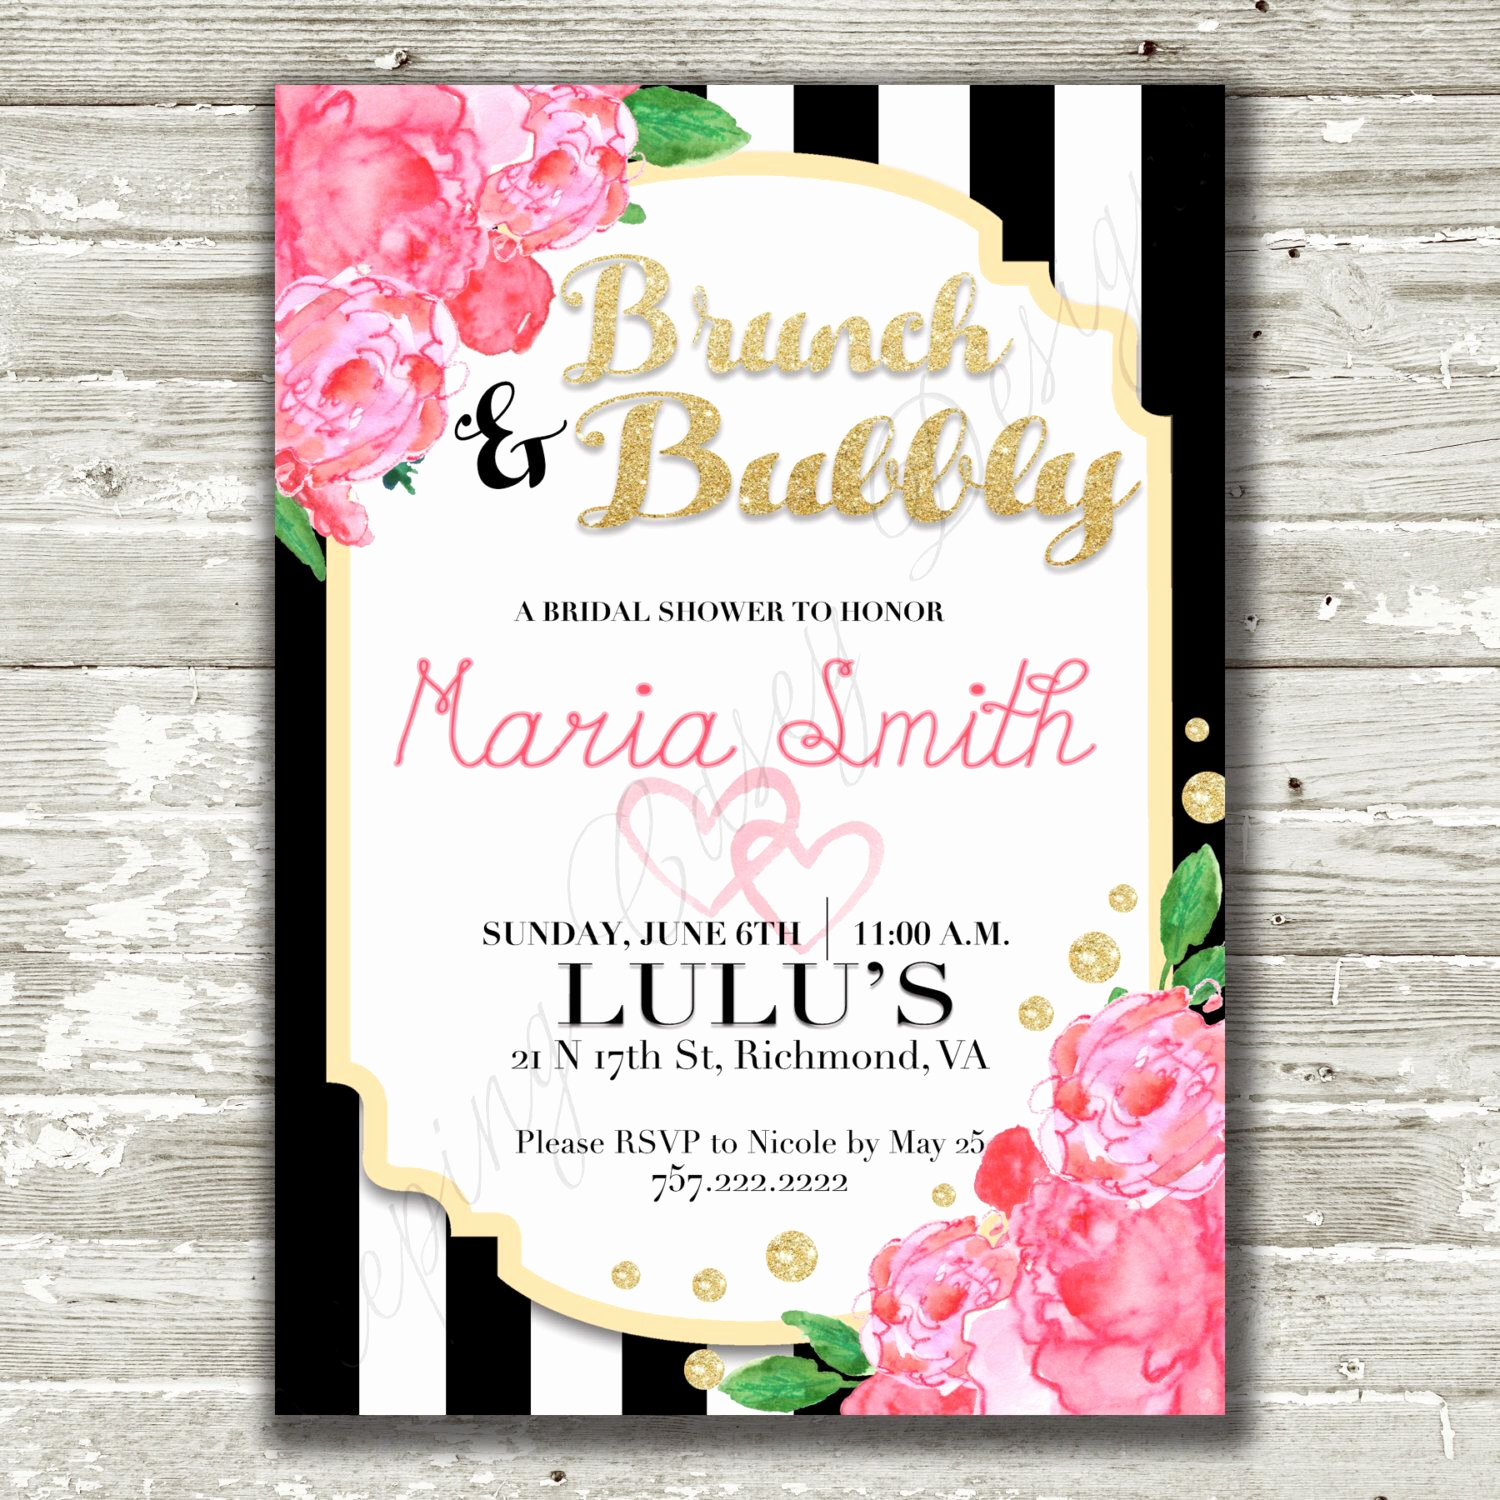 Kate Spade Invitation Template Free Fresh Pin by Keeping Casey Designs On Bridal Shower Invitations